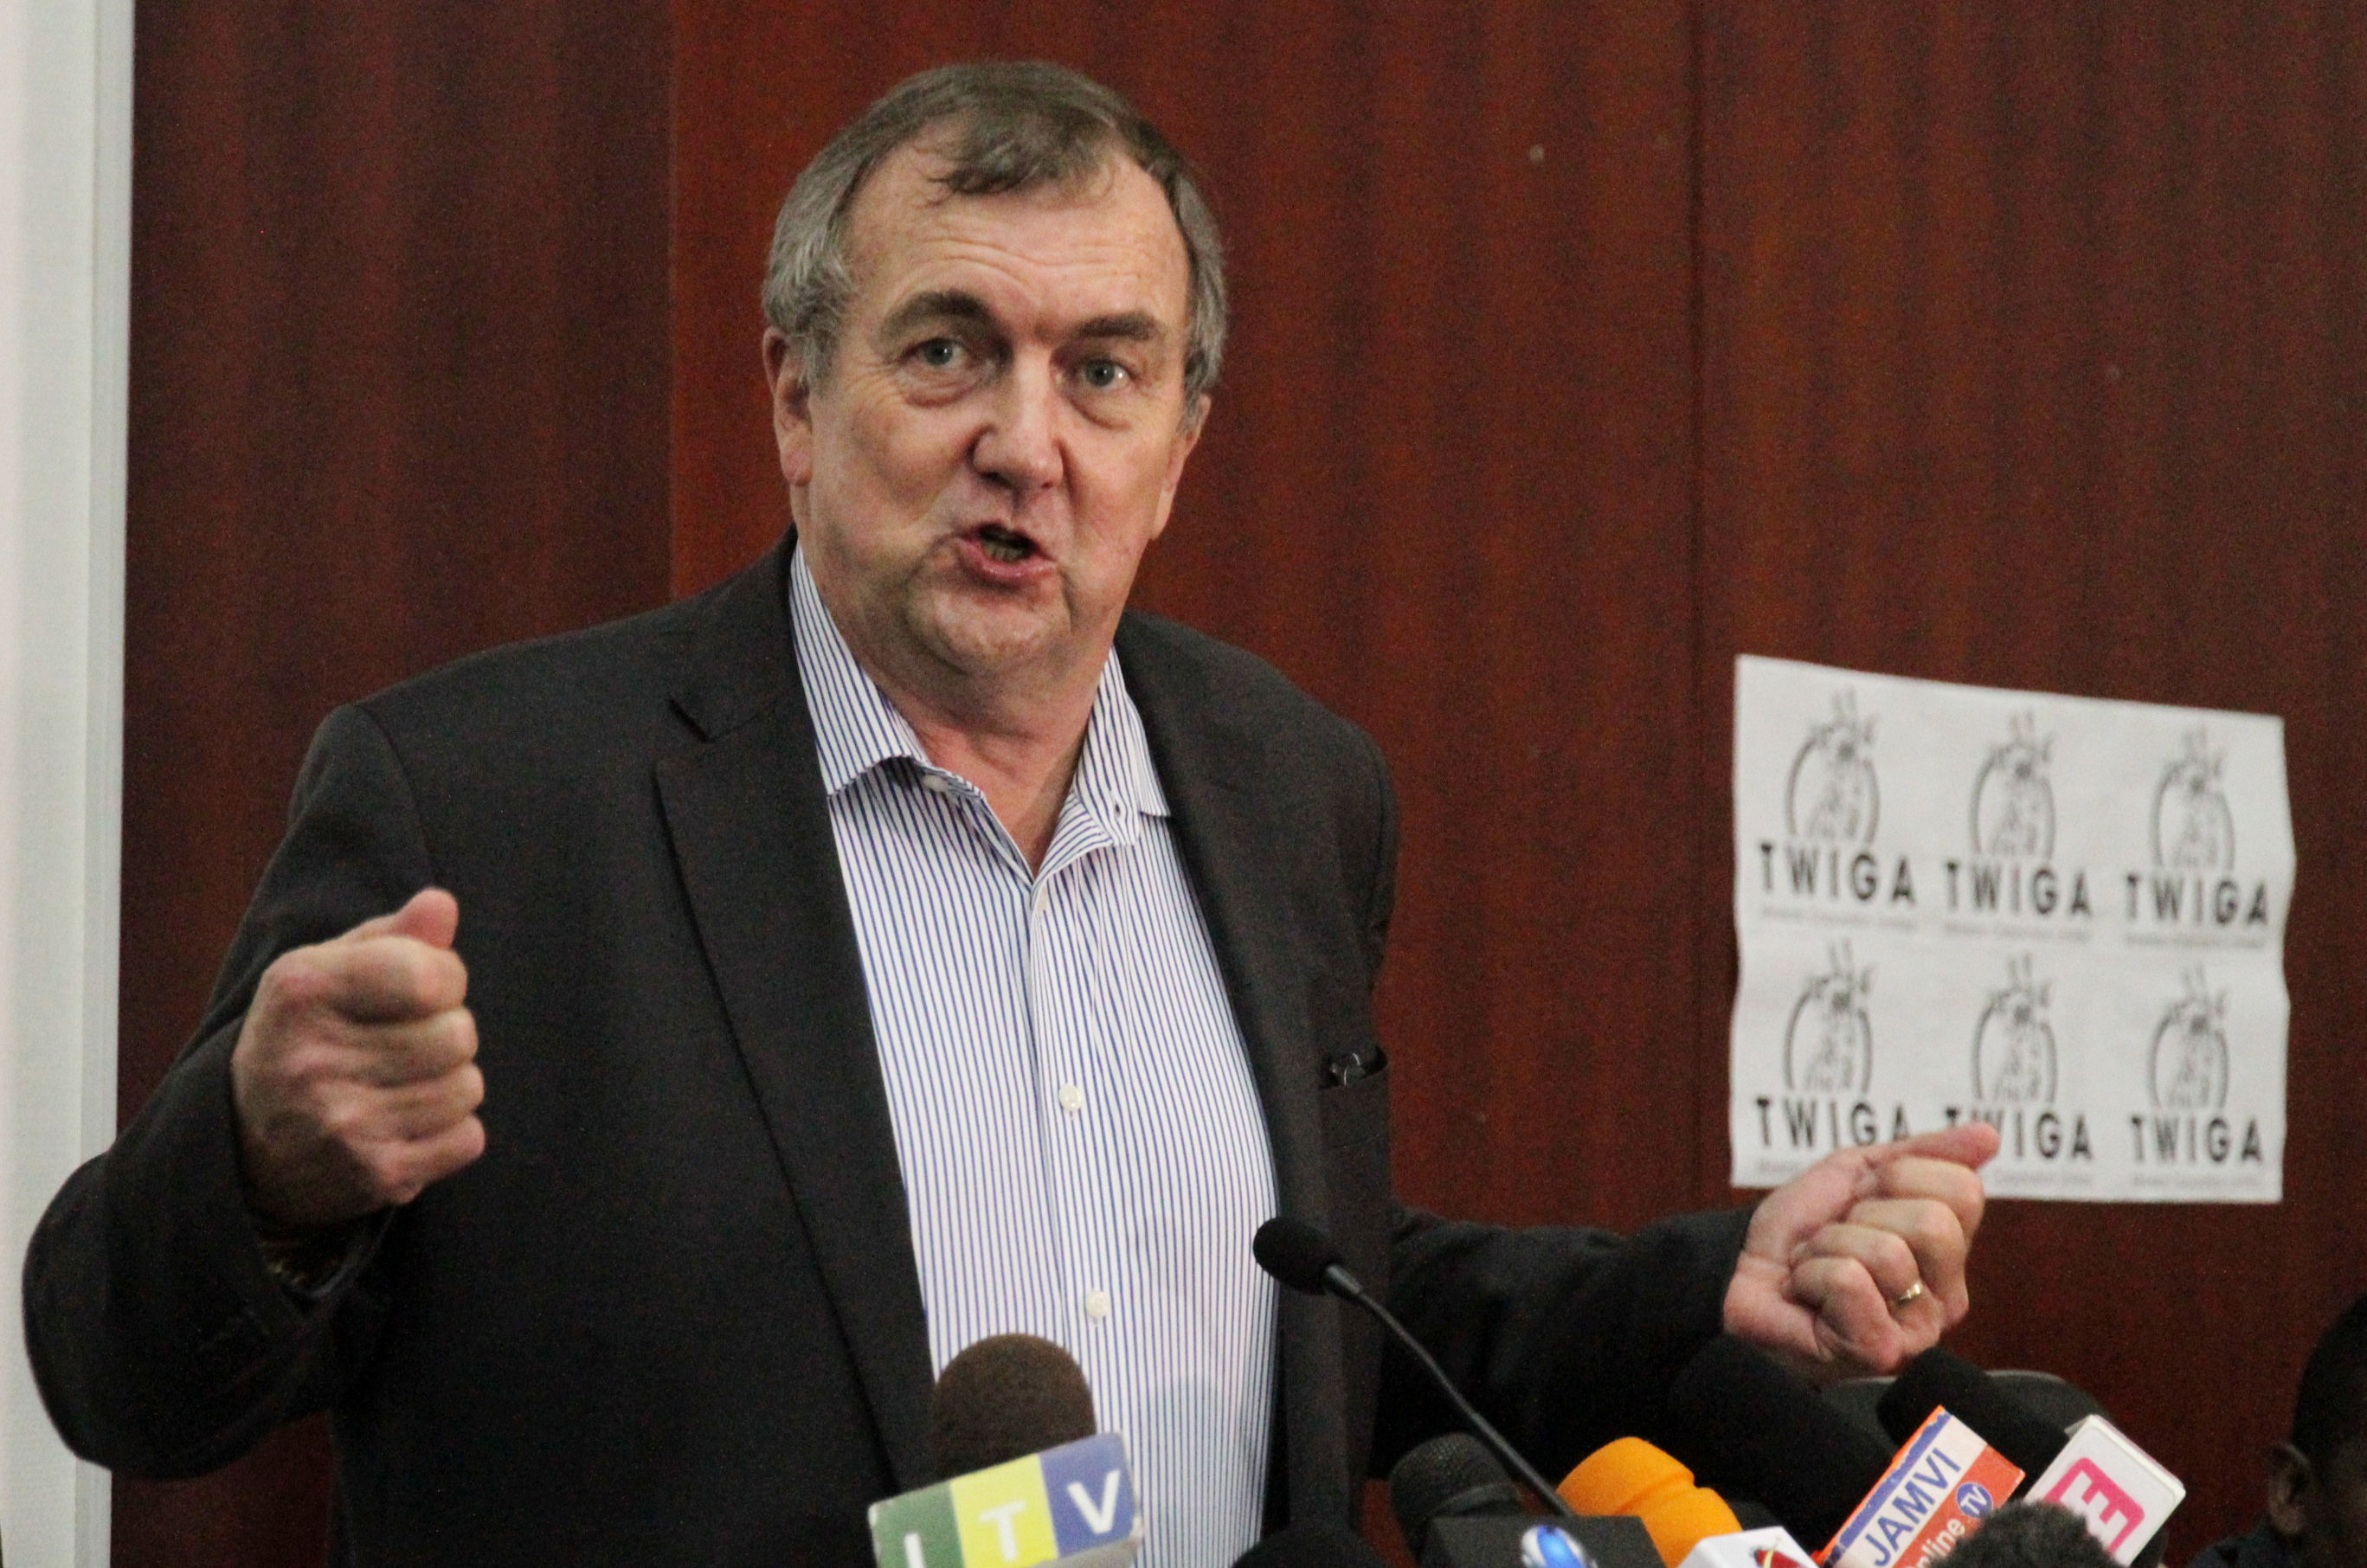 Mark Bristow, chief executive officer of Barrick Gold, address a news conference at the launch of Twiga Minerals Heralds Partnership between Tanzania Government and Barrick Gold Corp in Dar es Salaam, Tanzania October 20, 2019. REUTERS/Emmanuel Herman